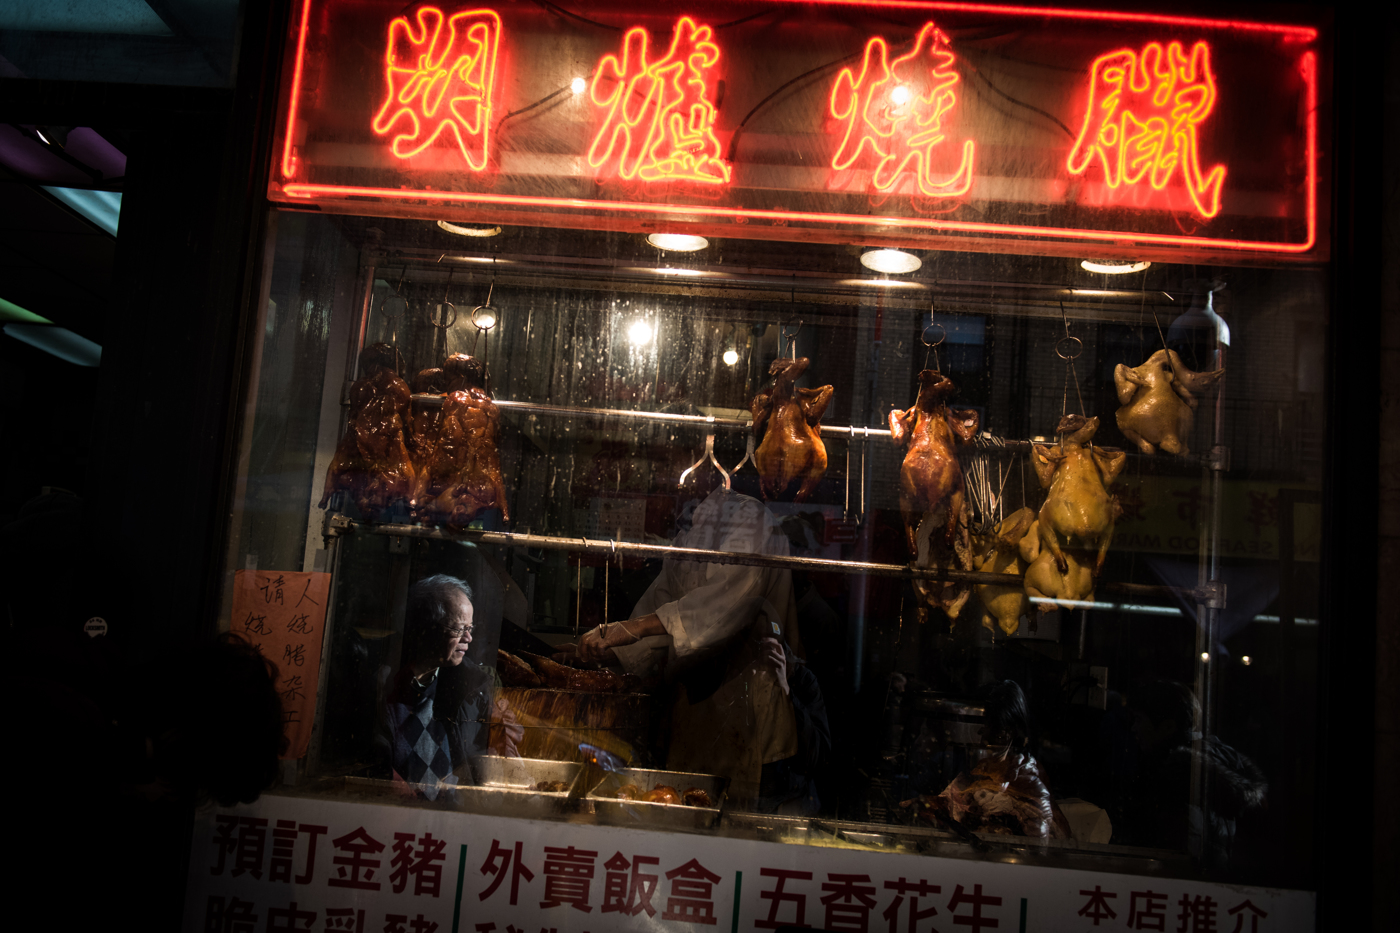 An elderly man is reflected in the window of a restaurant in a neighborhood busy with people shopping in preparation for Chinese New Year in the Chinatown neighborhood of Manhattan in New York, NY.